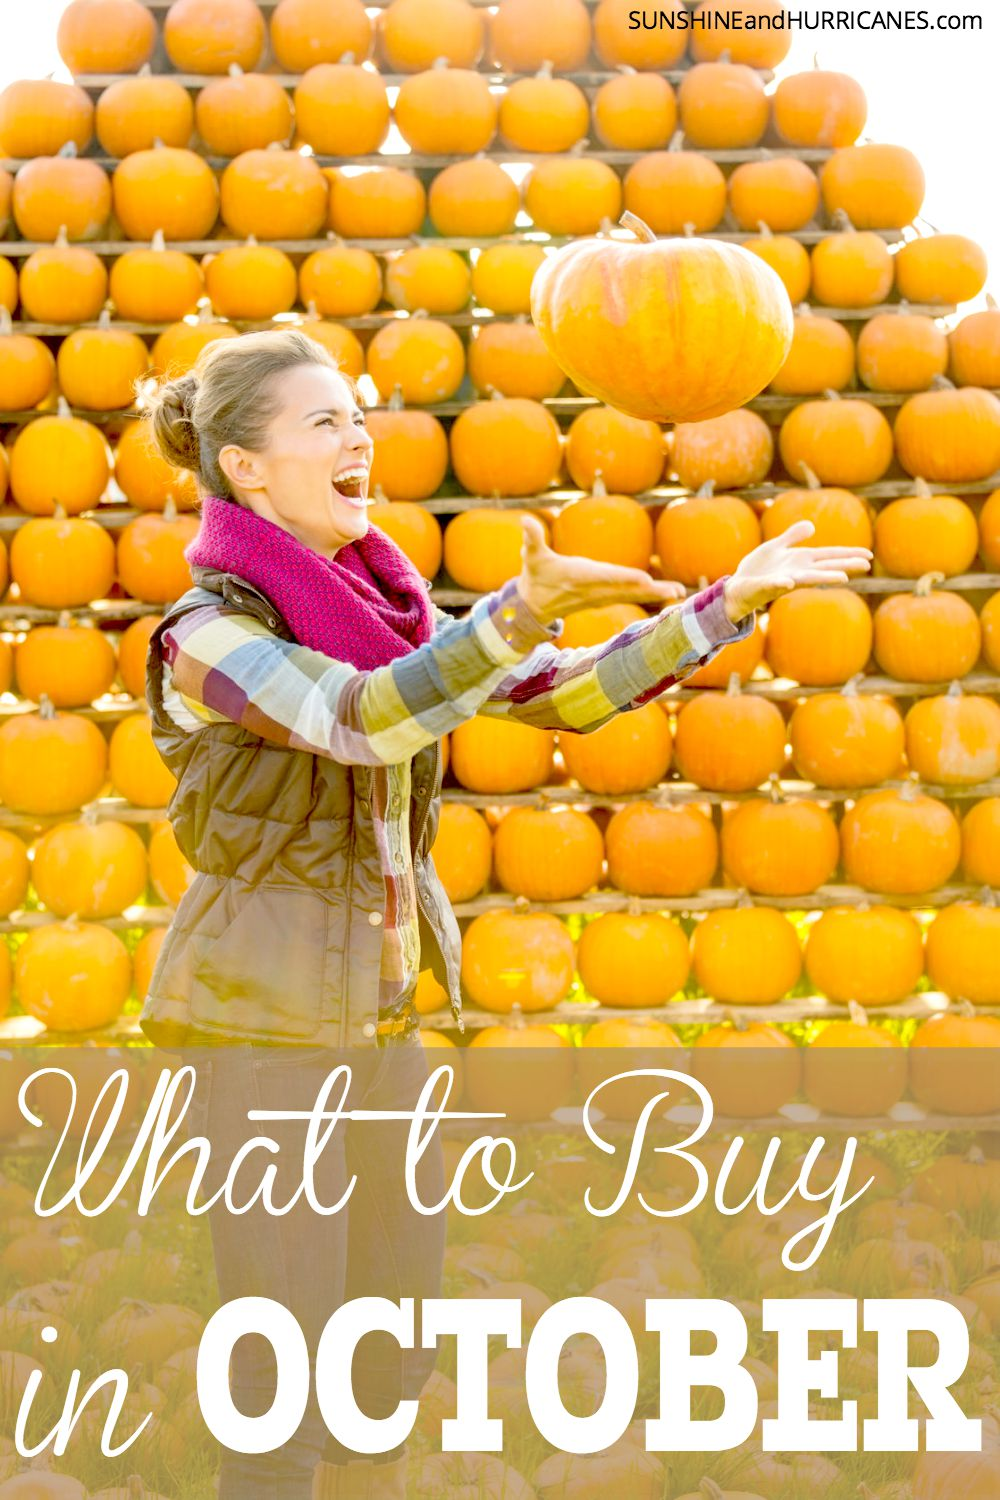 Did you know that every month features the BEST deals of the whole year on certain items the you by and use in your household all the time? Save money and keep your family budget on track by knowing what to buy when. Here is What to Buy in October. SunshineandHurricanes.com